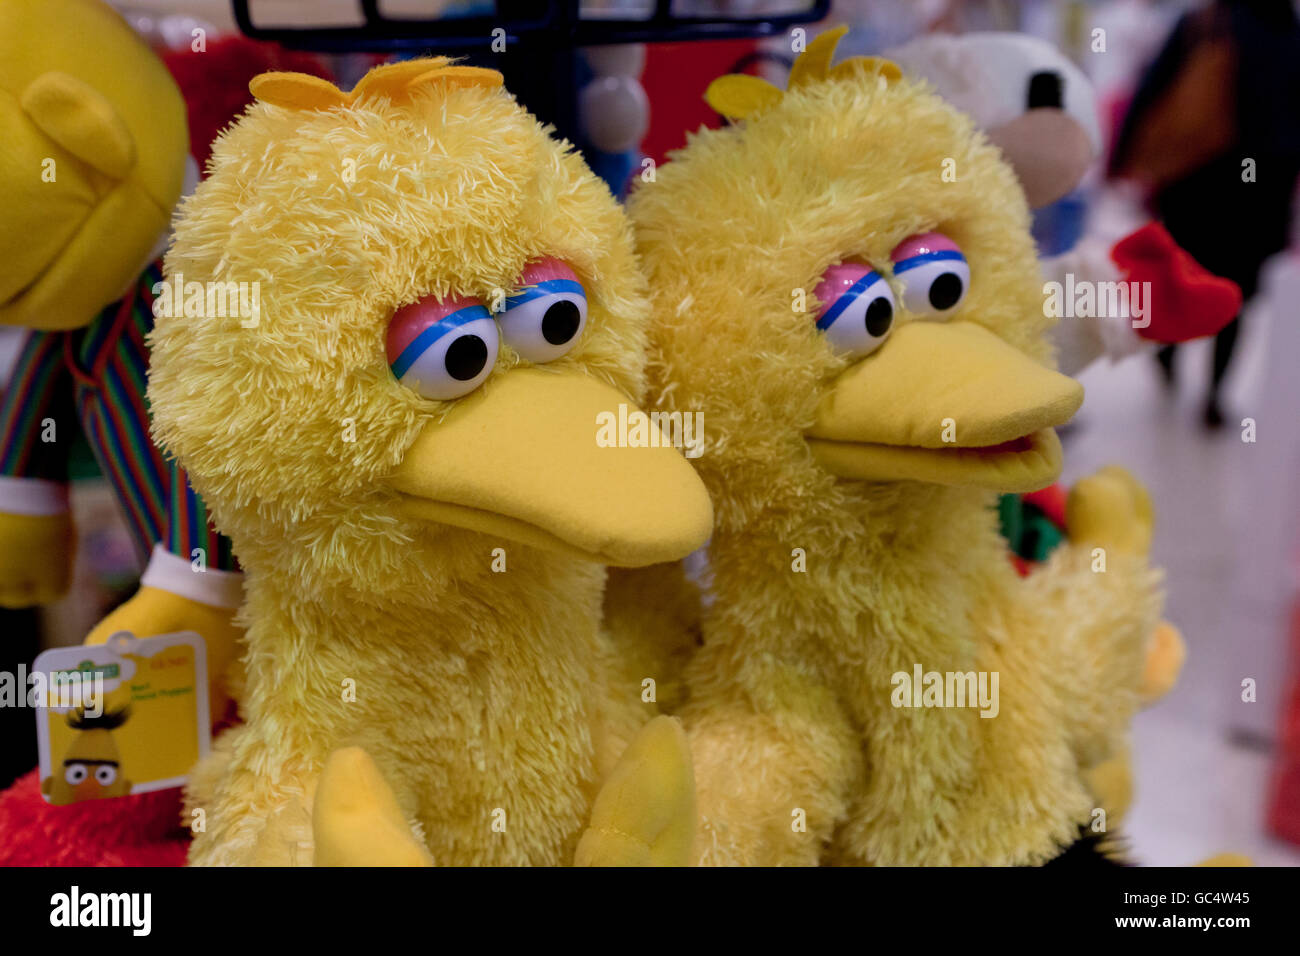 Big Bird hand puppets at toy store - USA - Stock Image